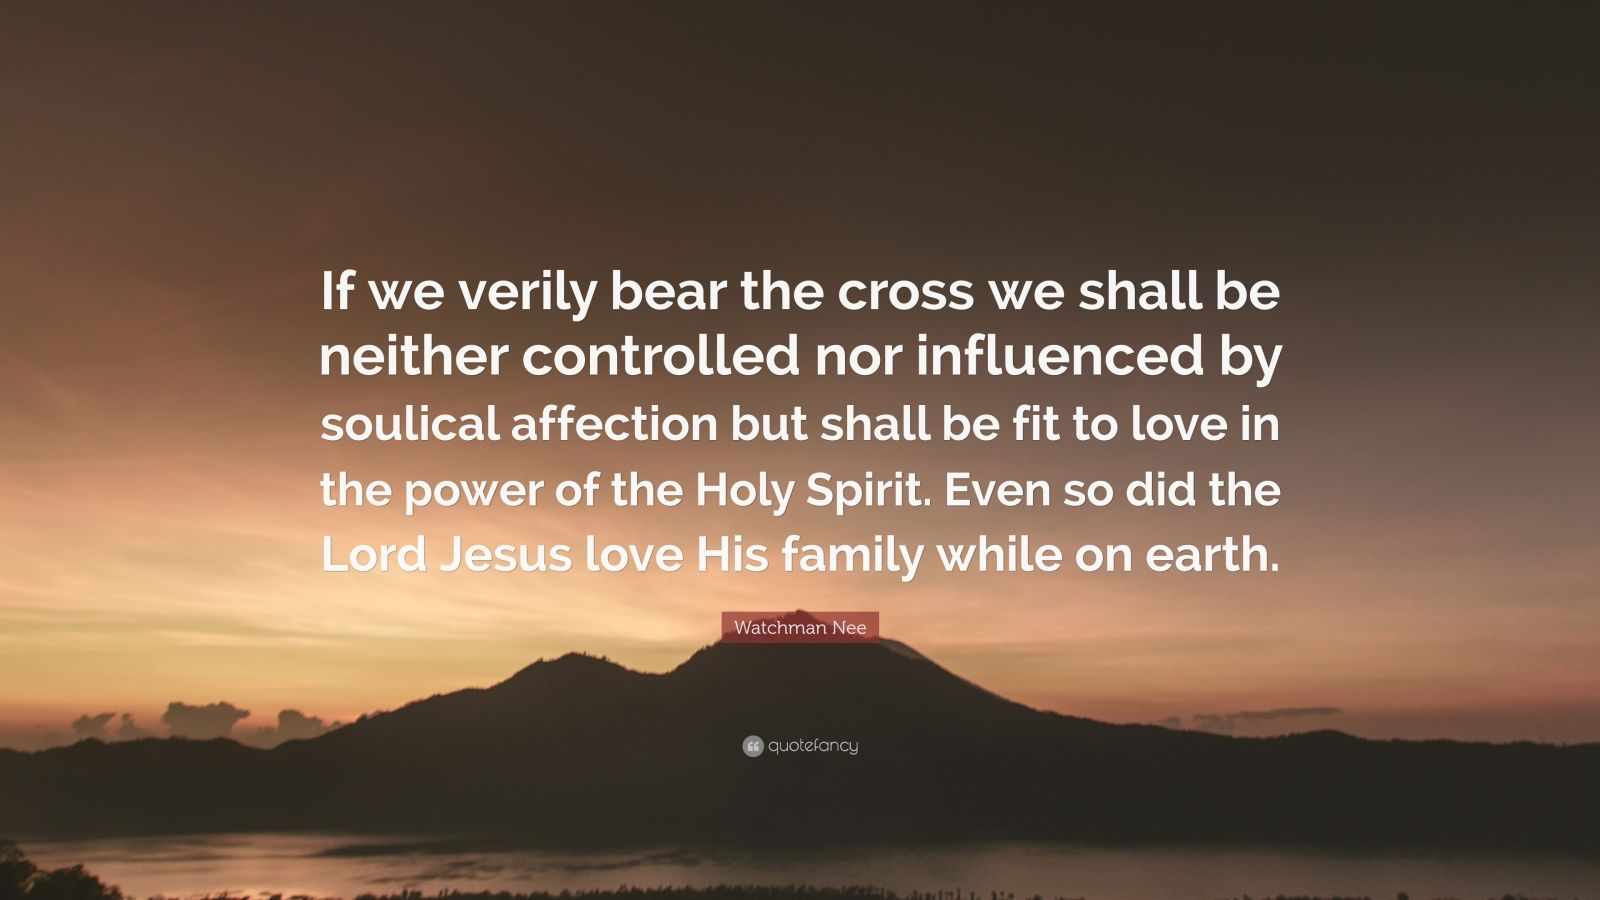 """Watchman Nee Quote: """"If we verily bear the cross we shall be neither controlled nor influenced by soulical affection but shall be fit to love in the power of the Holy Spirit. Even so did the Lord Jesus love His family while on earth."""""""